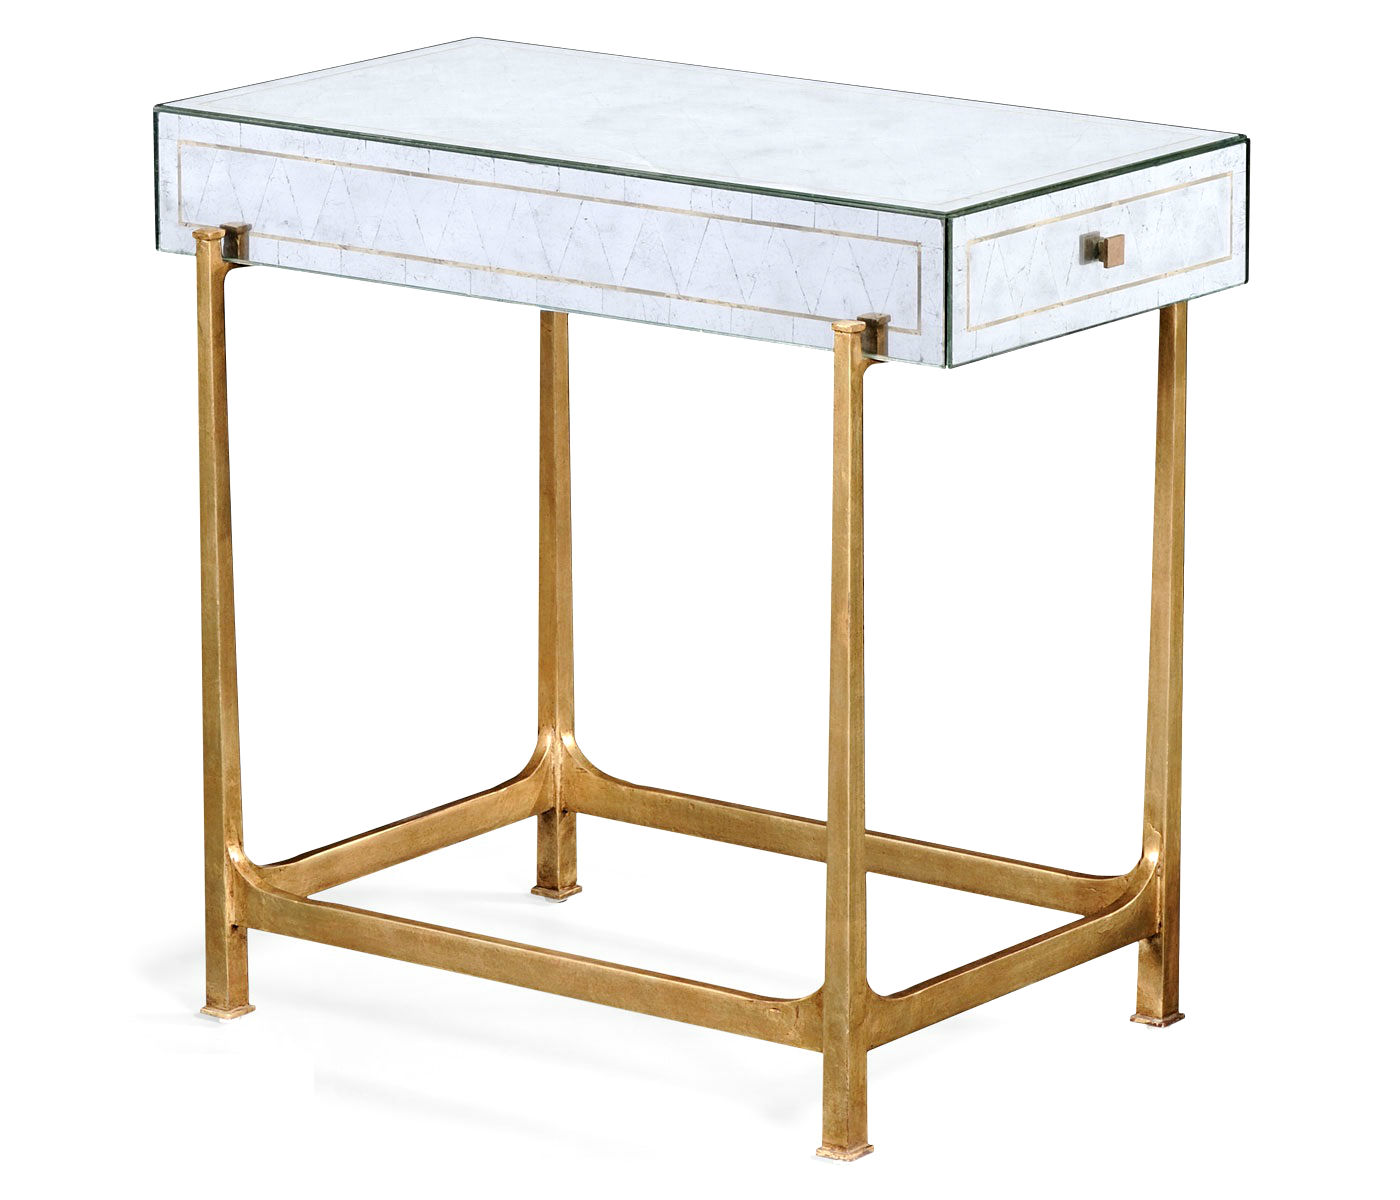 eglomise side table end accent stylish coffee mugs toronto tables white and gold glass with wooden legs extra long sofa floor tom target marble battery operated lamps shade